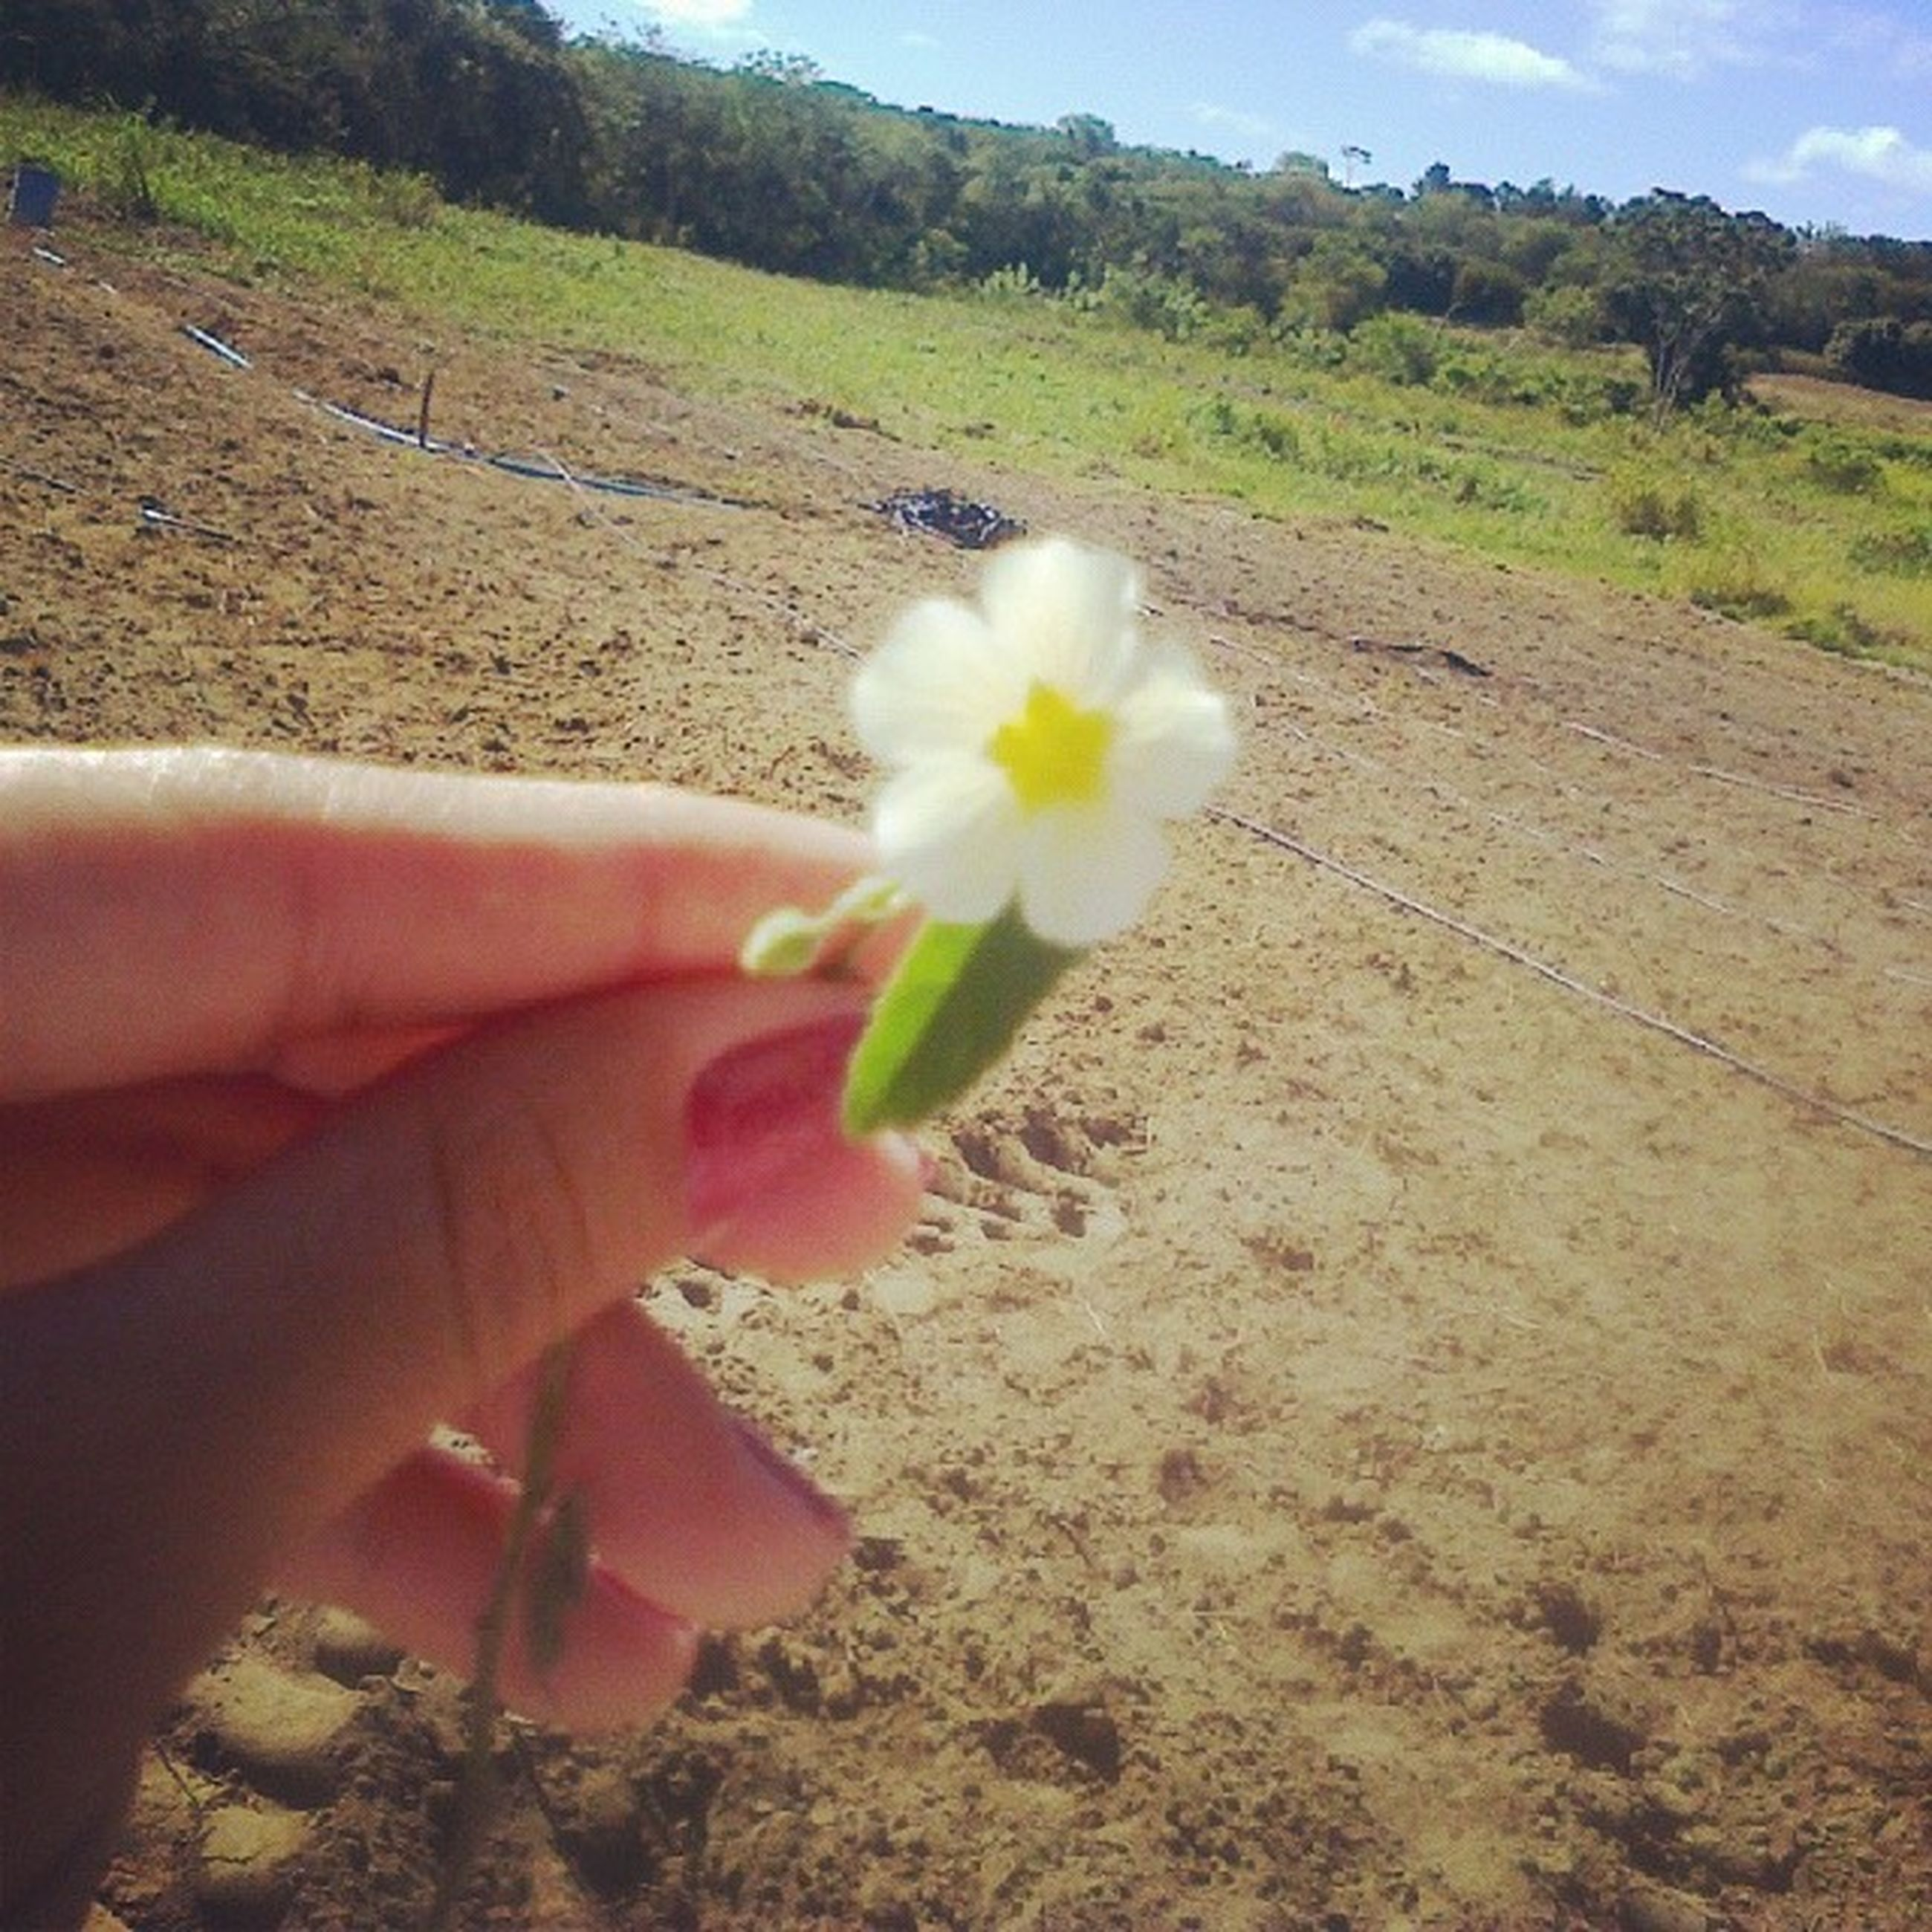 flower, person, holding, fragility, petal, flower head, freshness, part of, personal perspective, unrecognizable person, beauty in nature, nature, leisure activity, single flower, lifestyles, growth, field